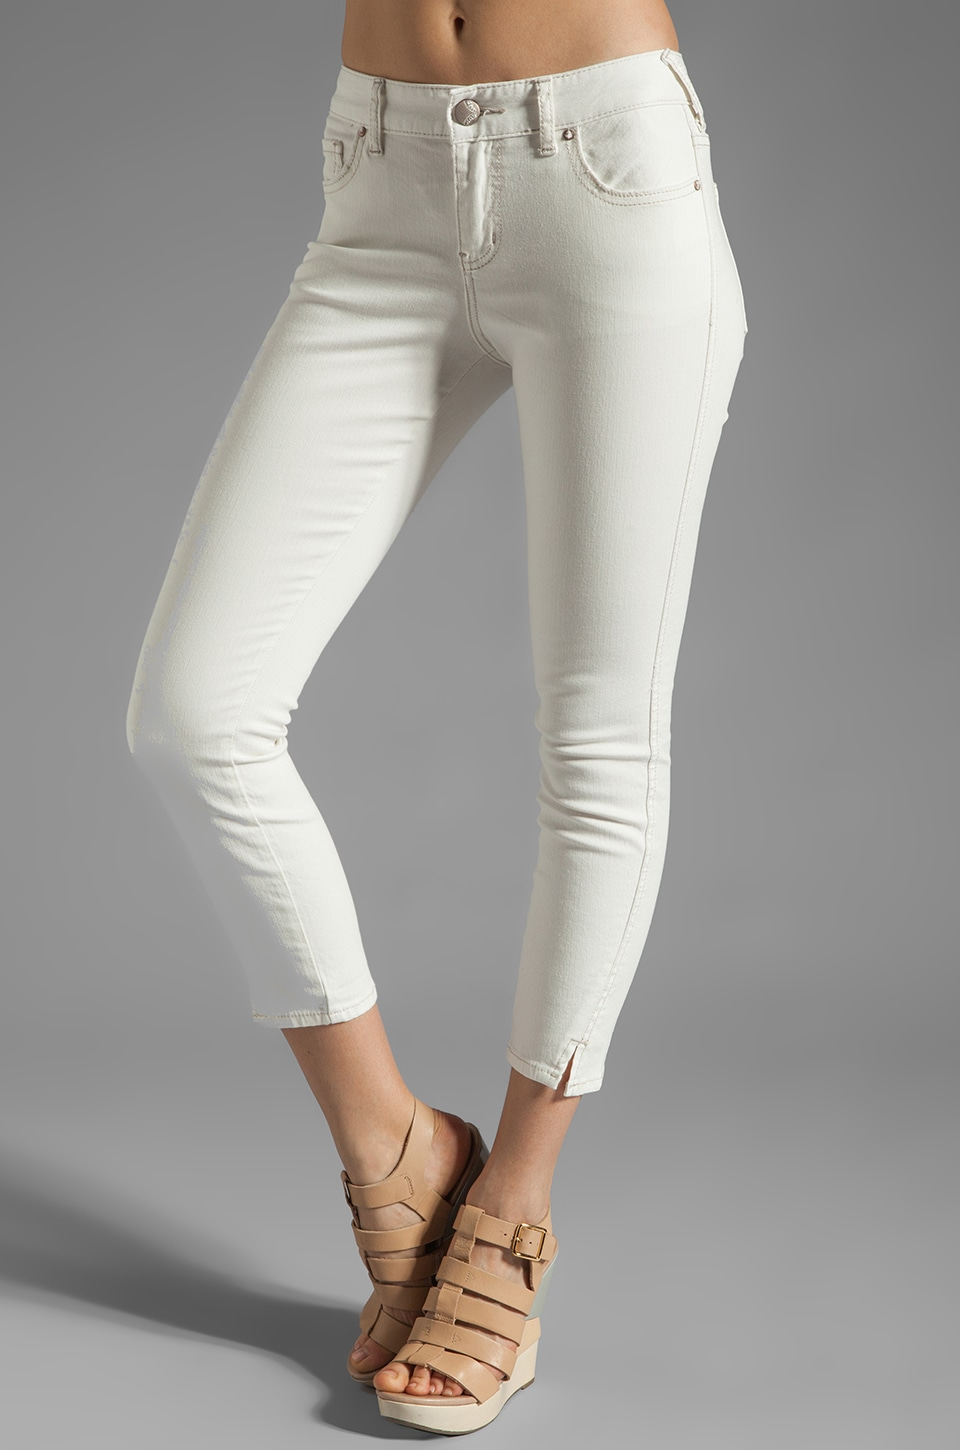 Free People Stretch Herringbone Crop Skinny in White